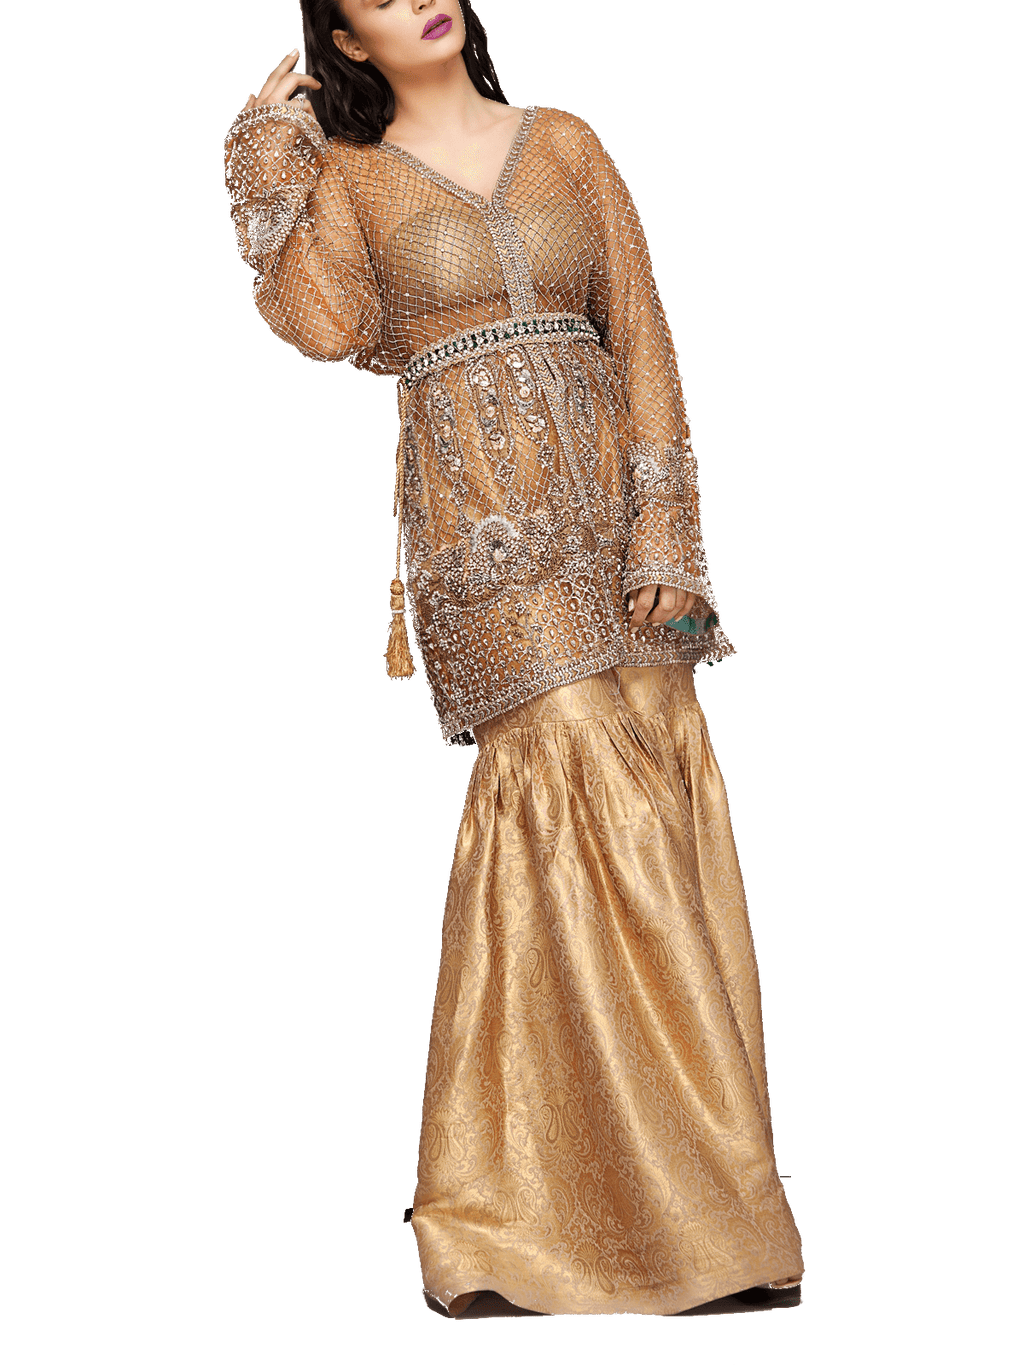 Mahgul - Gold Embroidered Net Jacket With Jamawar Blouse & Jamawar Sharara